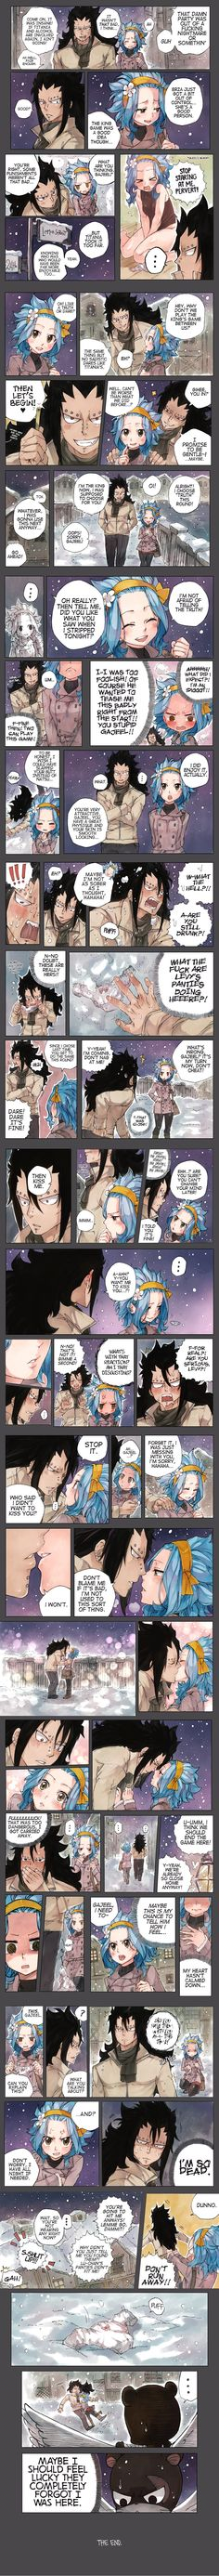 The Panty Incident - A continuation of the Christmas Special where Gajeel and Levy walk home and attempt to flirt with each other. Too caught into their world, they forgot they had company. made by Rboz   sketchy ✖ flavor